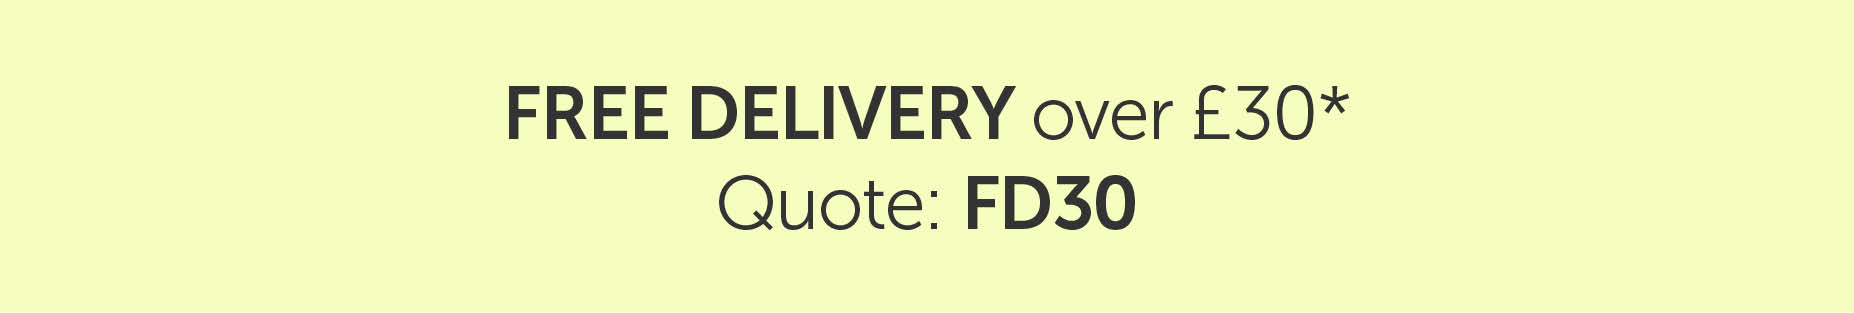 FREE Delivery over £30* | Salons Direct